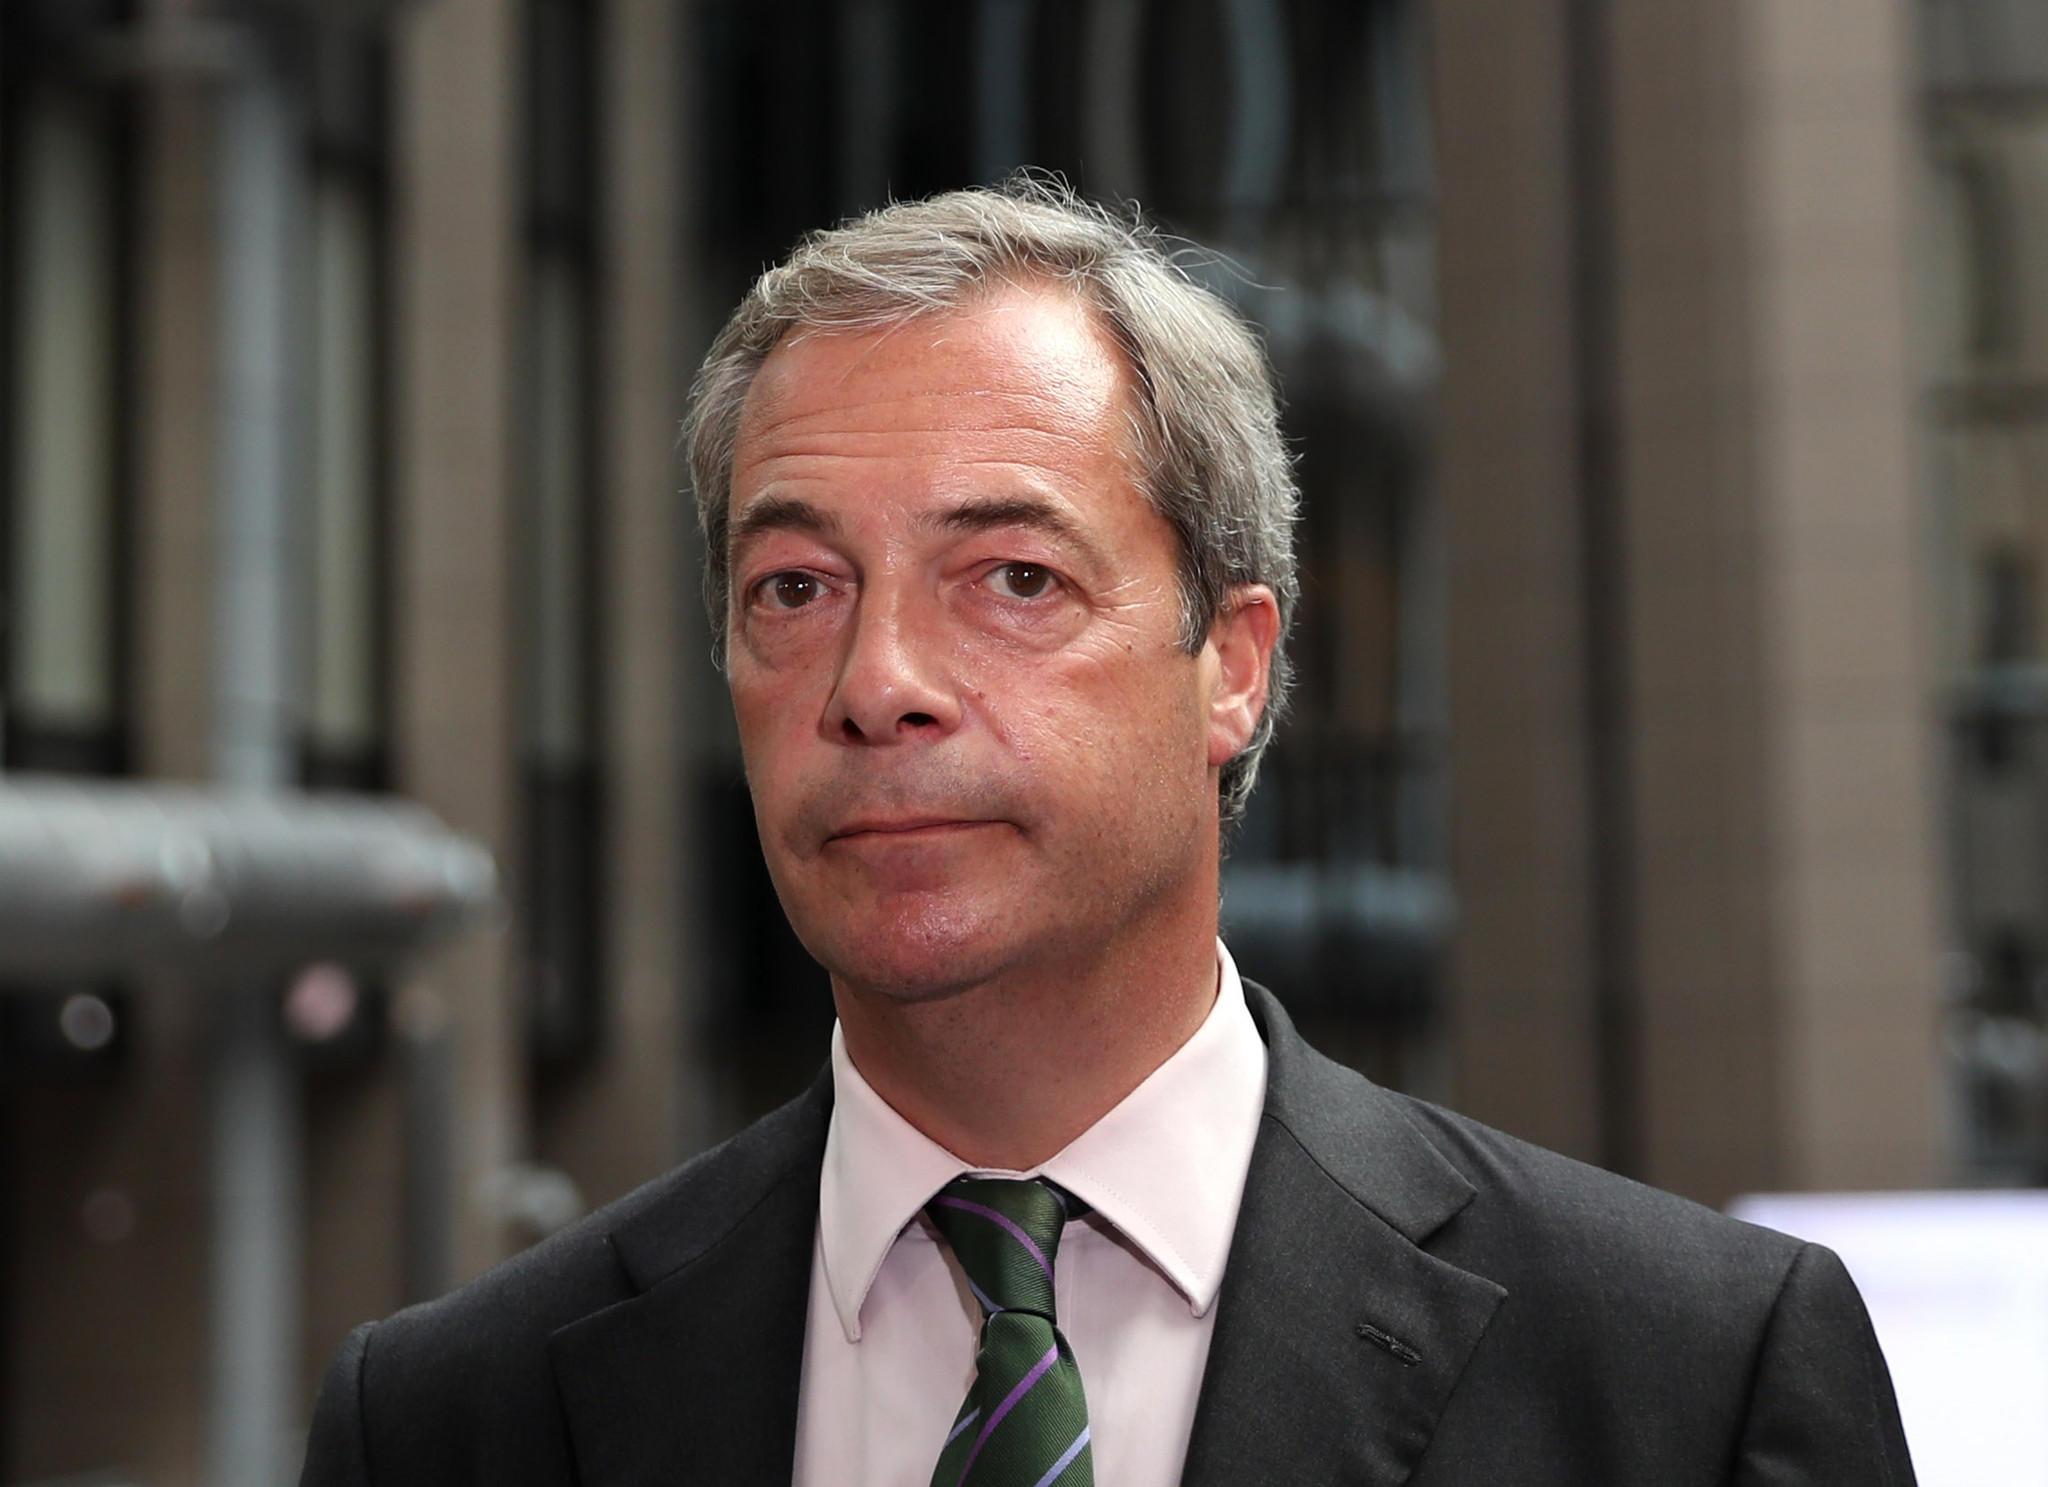 Nigel Farage, head of the UK Independence Party, resigns after 'Brexit' victory